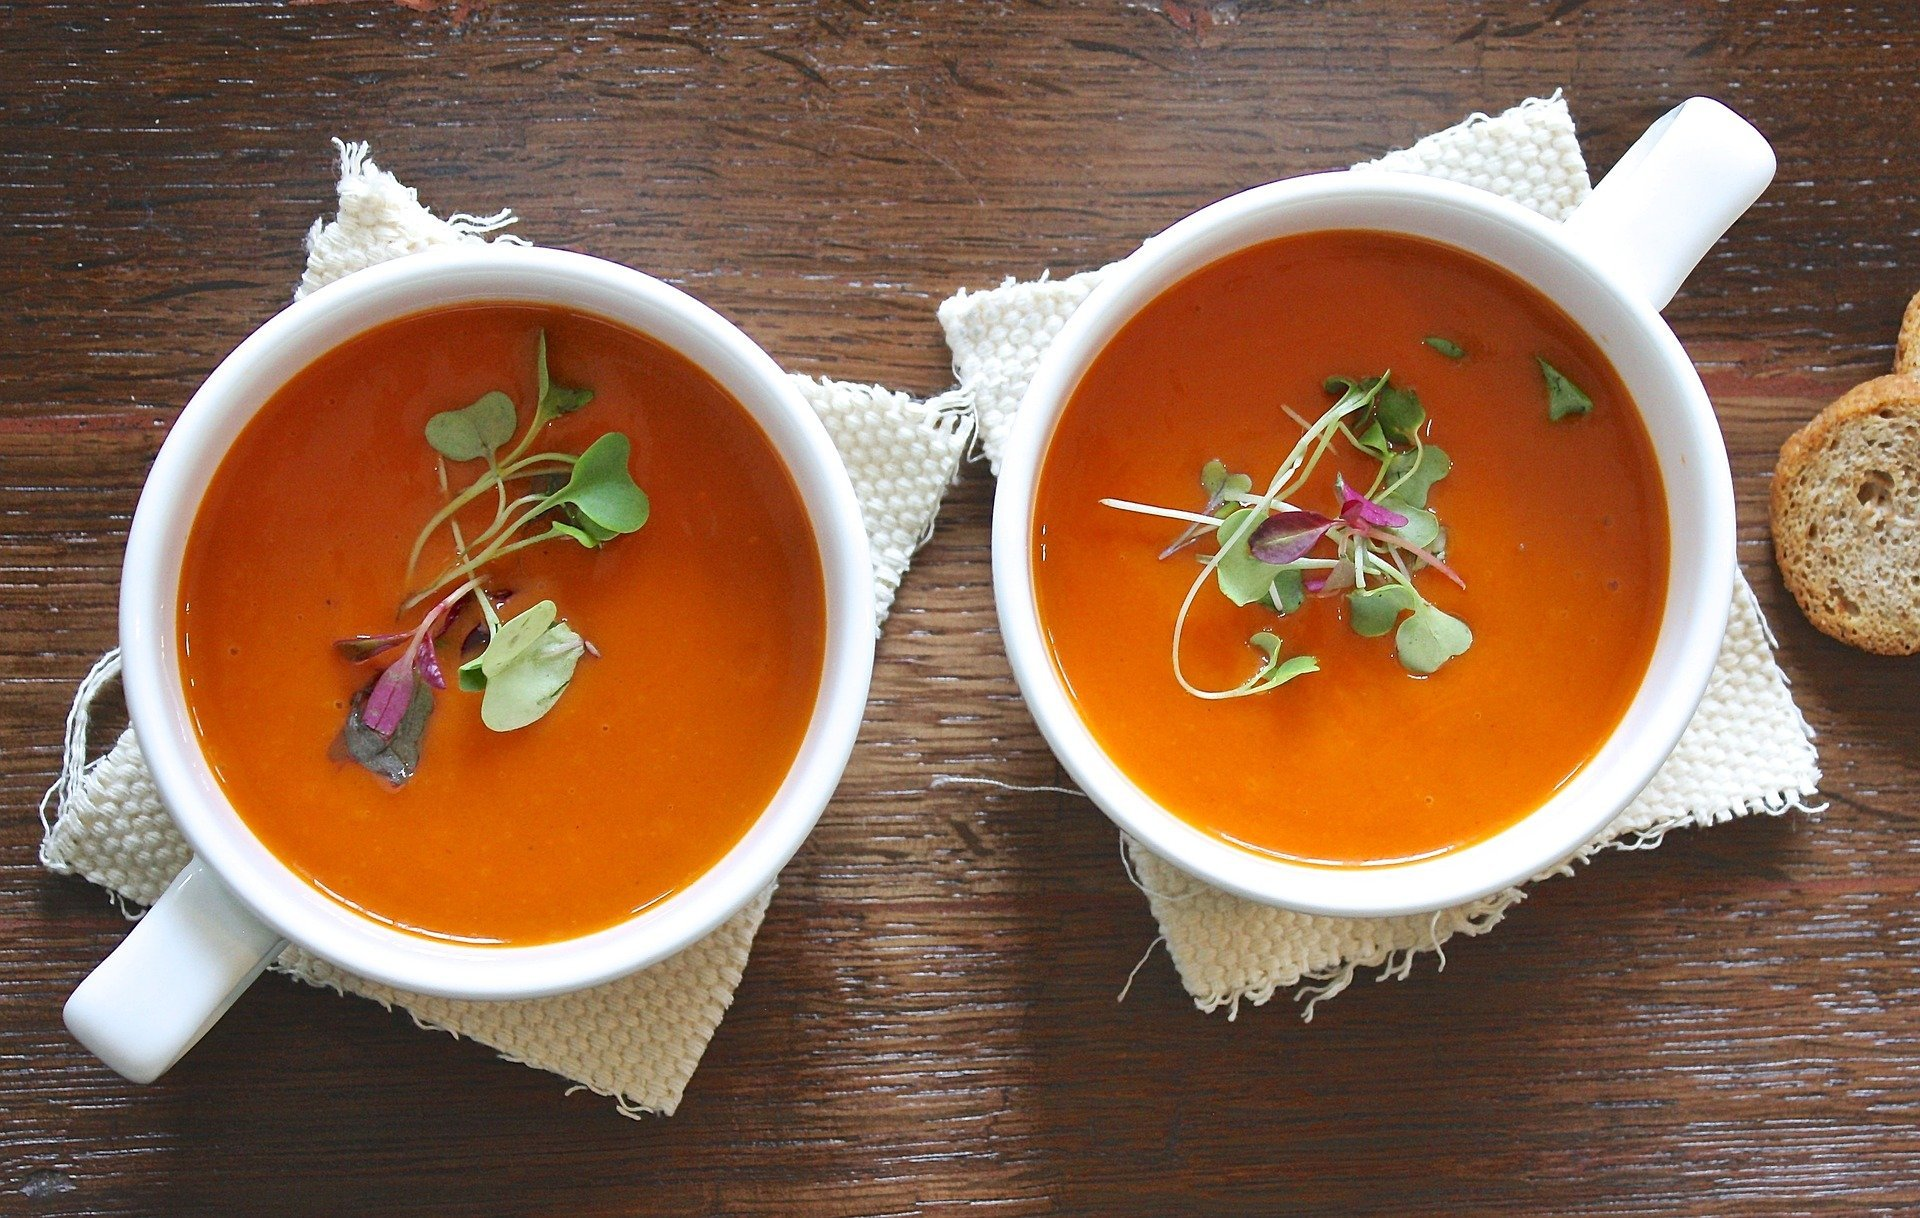 What was wrong with this tomato soup? | Photo: Pixabay/Aline Ponce